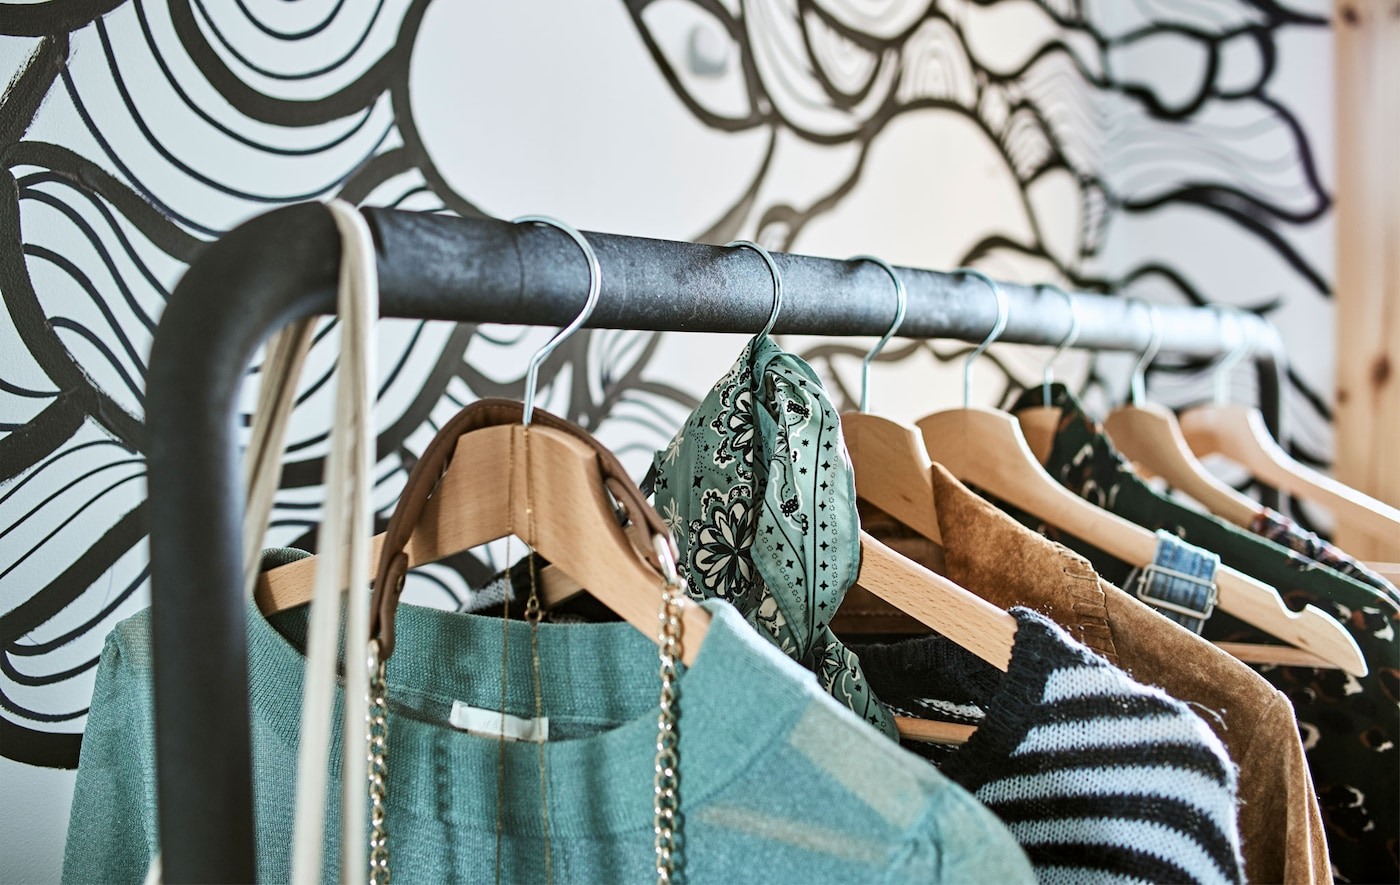 Clothes hanging on wooden coat hangers on a clothes rail placed in front of wavy black and white wallpaper.